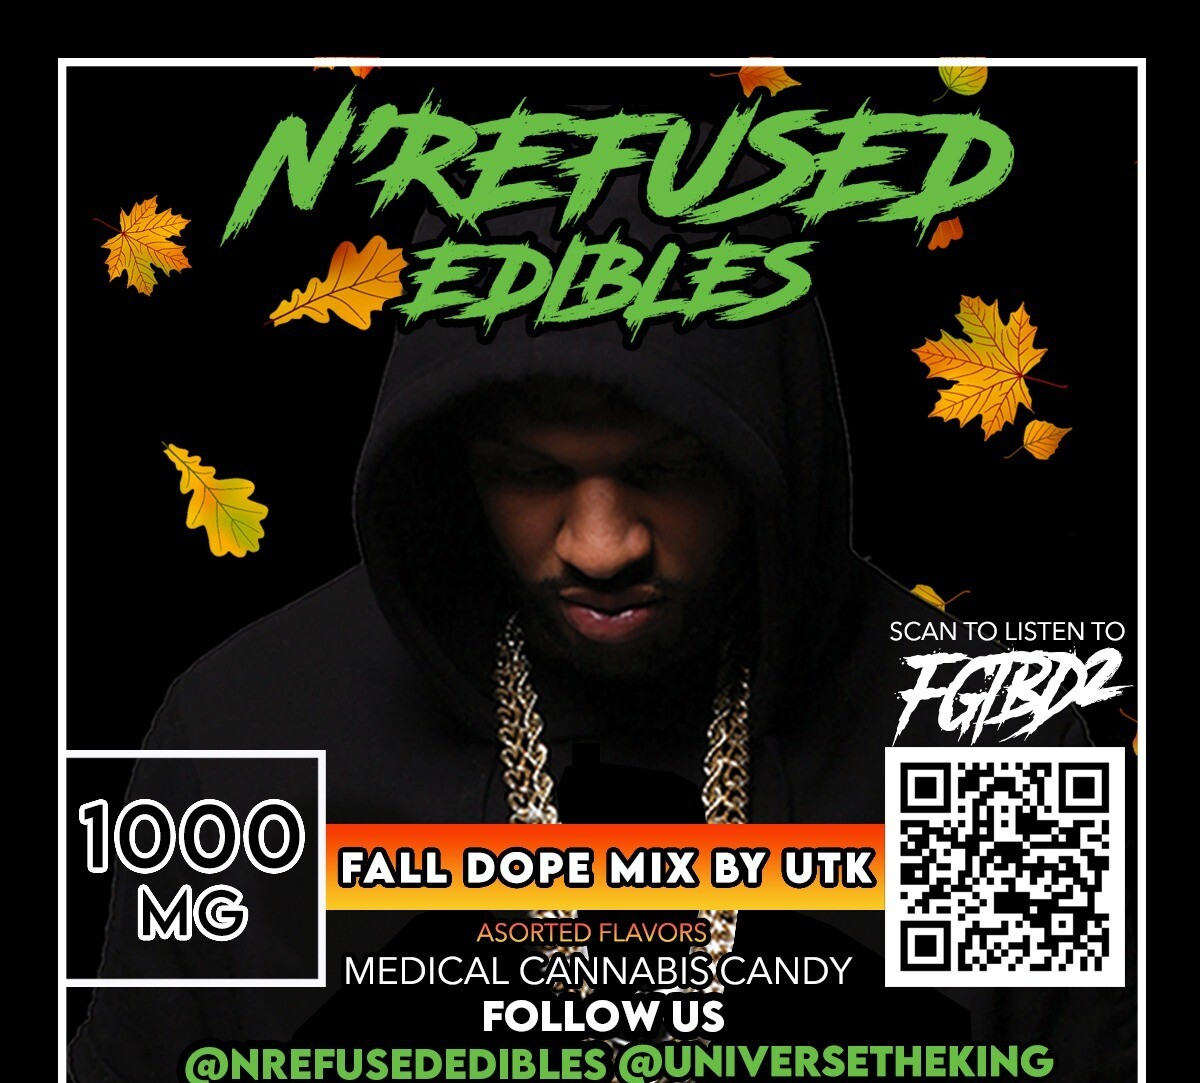 """N'REFUSED EDIBLES """"FALL DOPE MIX"""" BY UTK & MORE"""